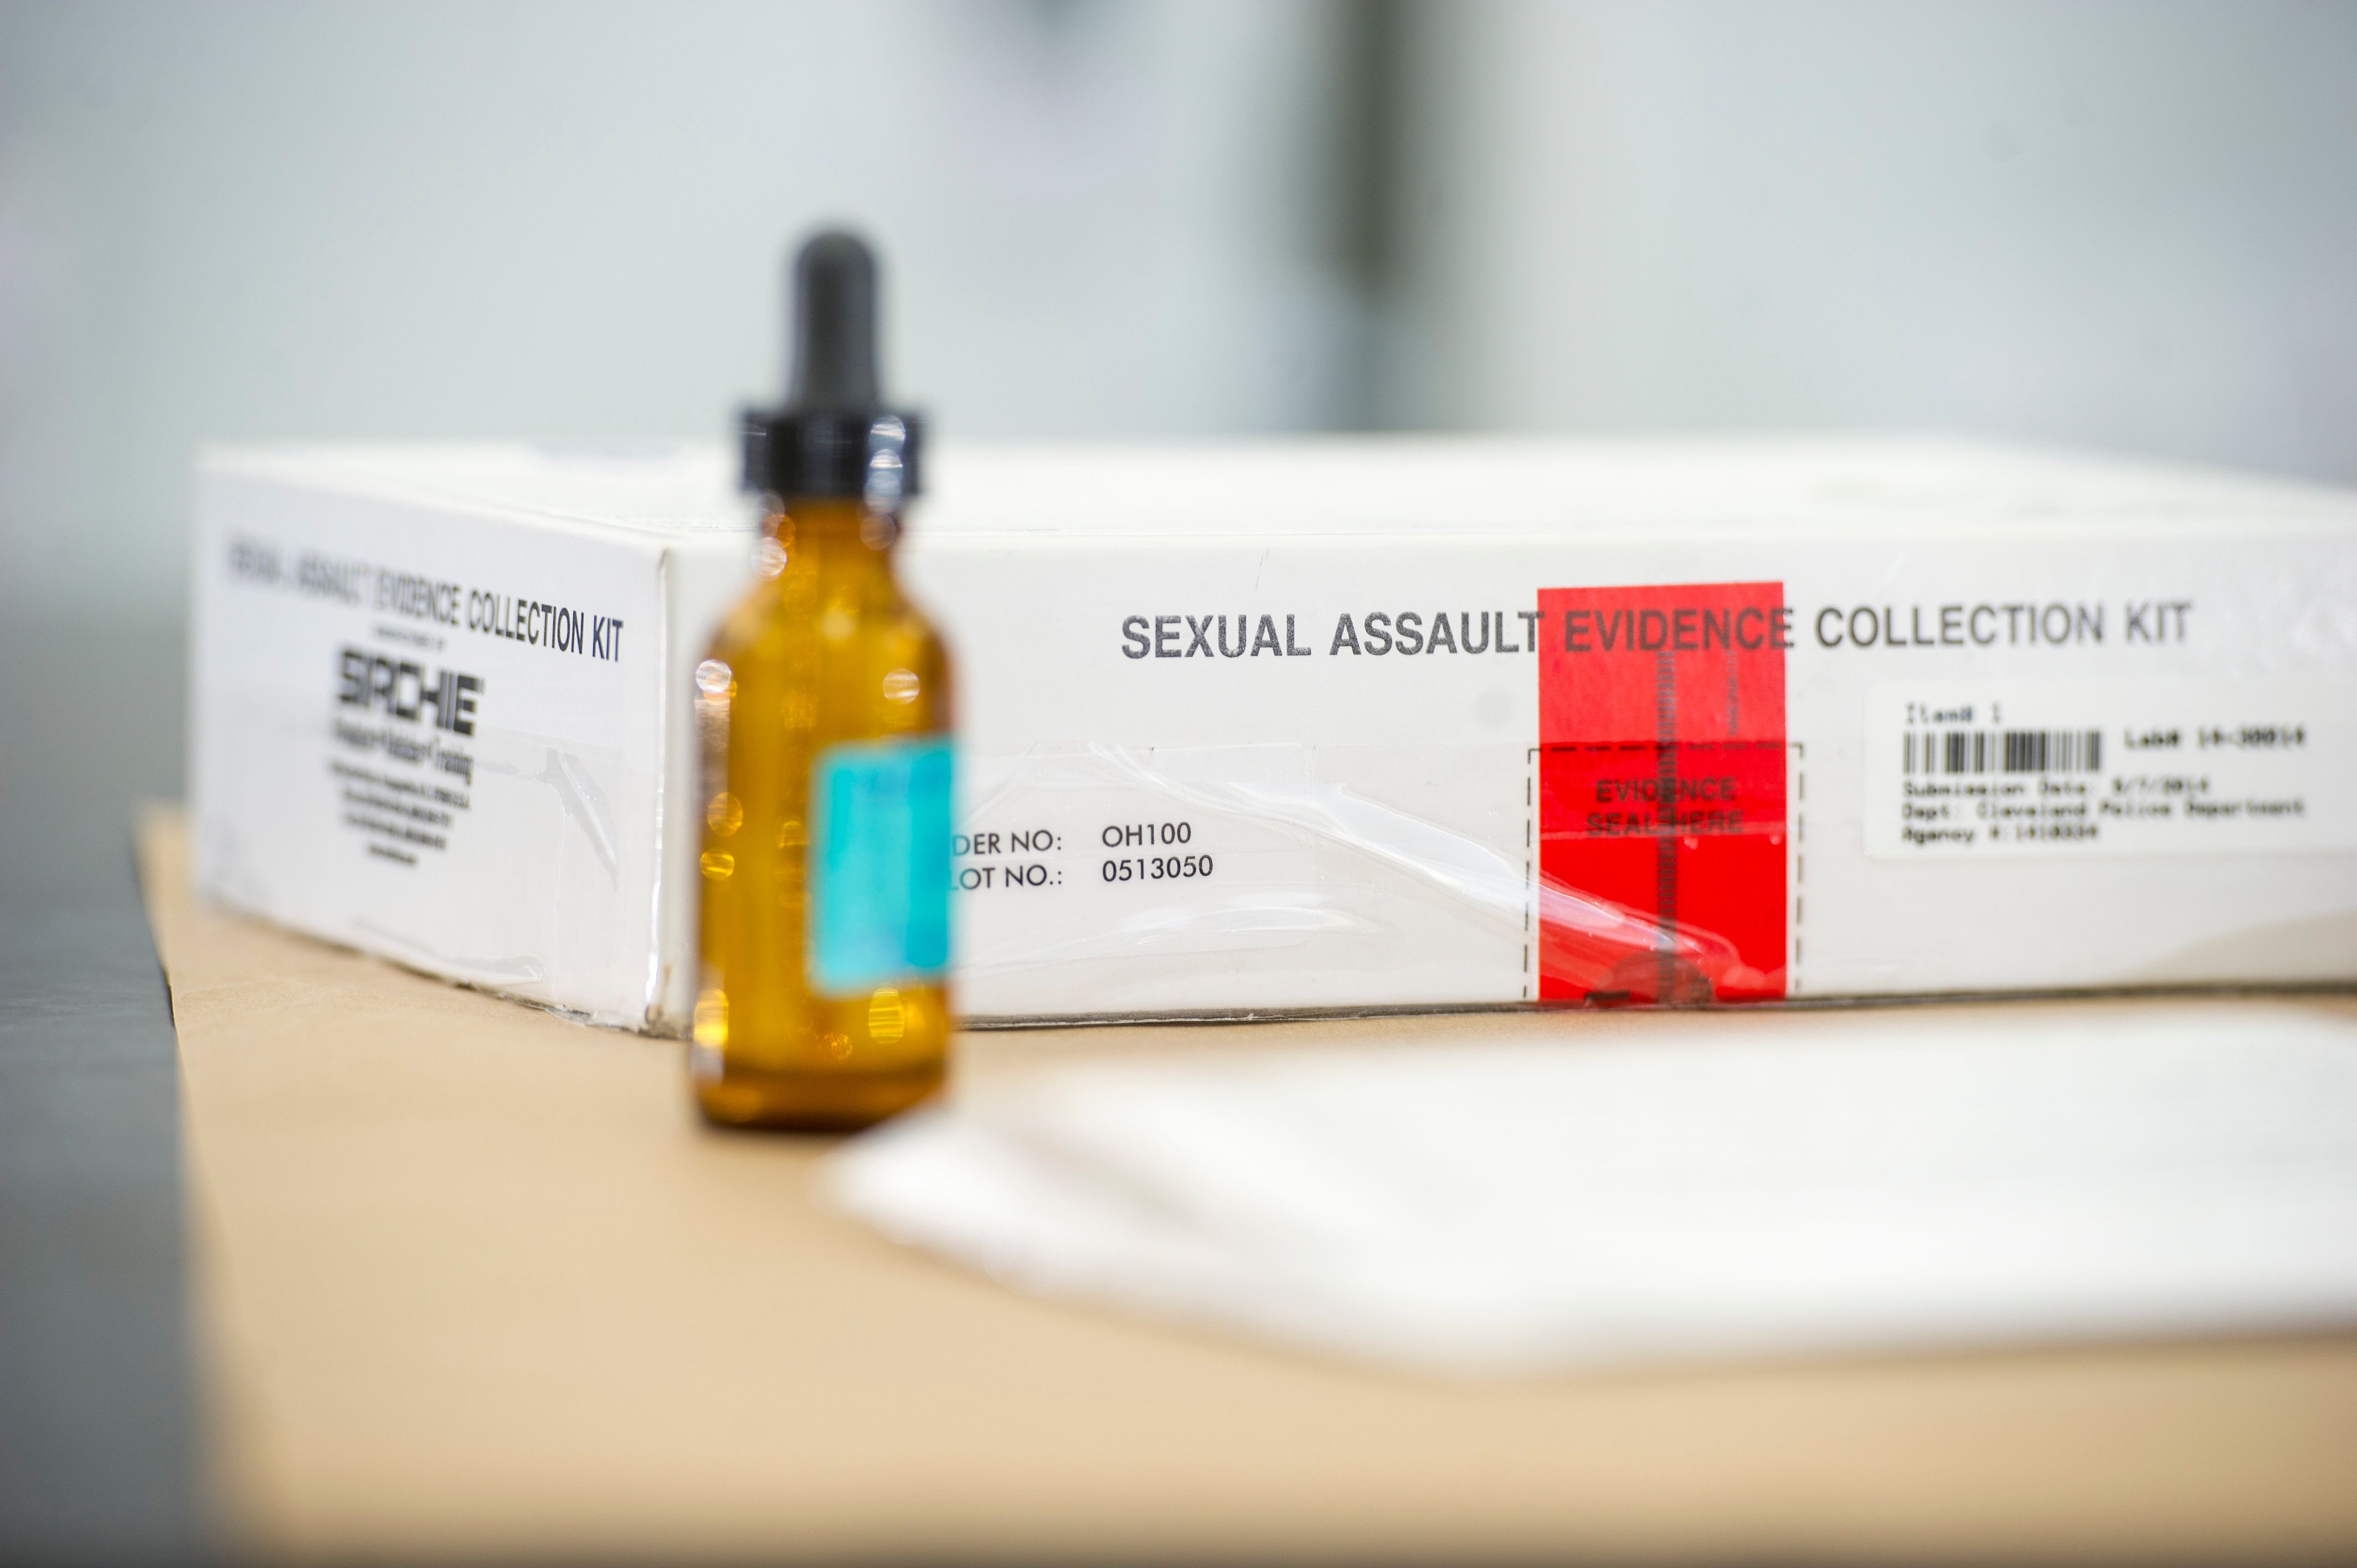 A sexual assault evidence collection kit fromthe Ohio Bureau of Criminal Investigation